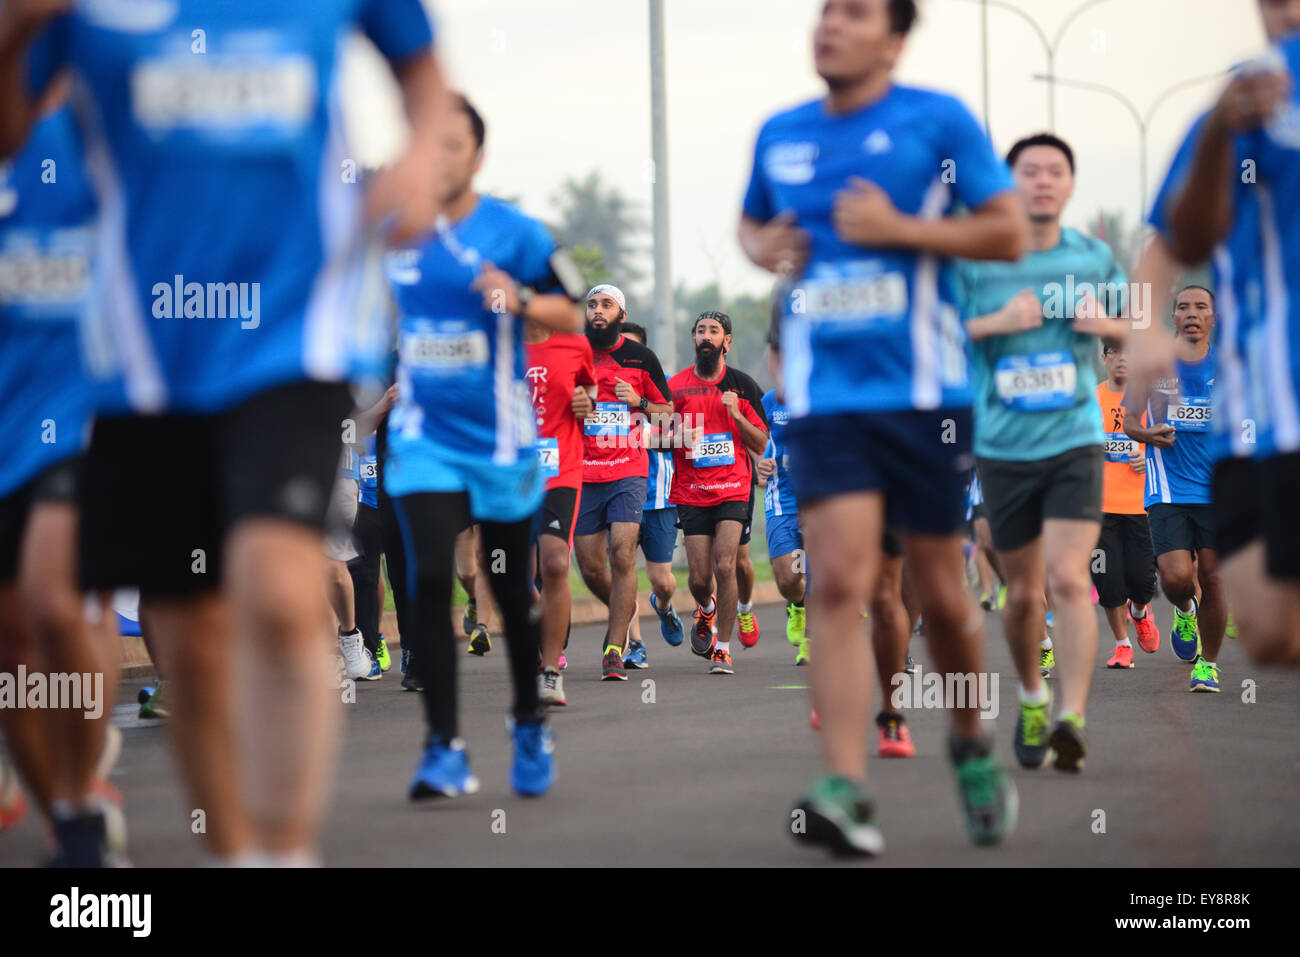 Urban running competition. Trending lifestyle sport activity in Indonesia. - Stock Image